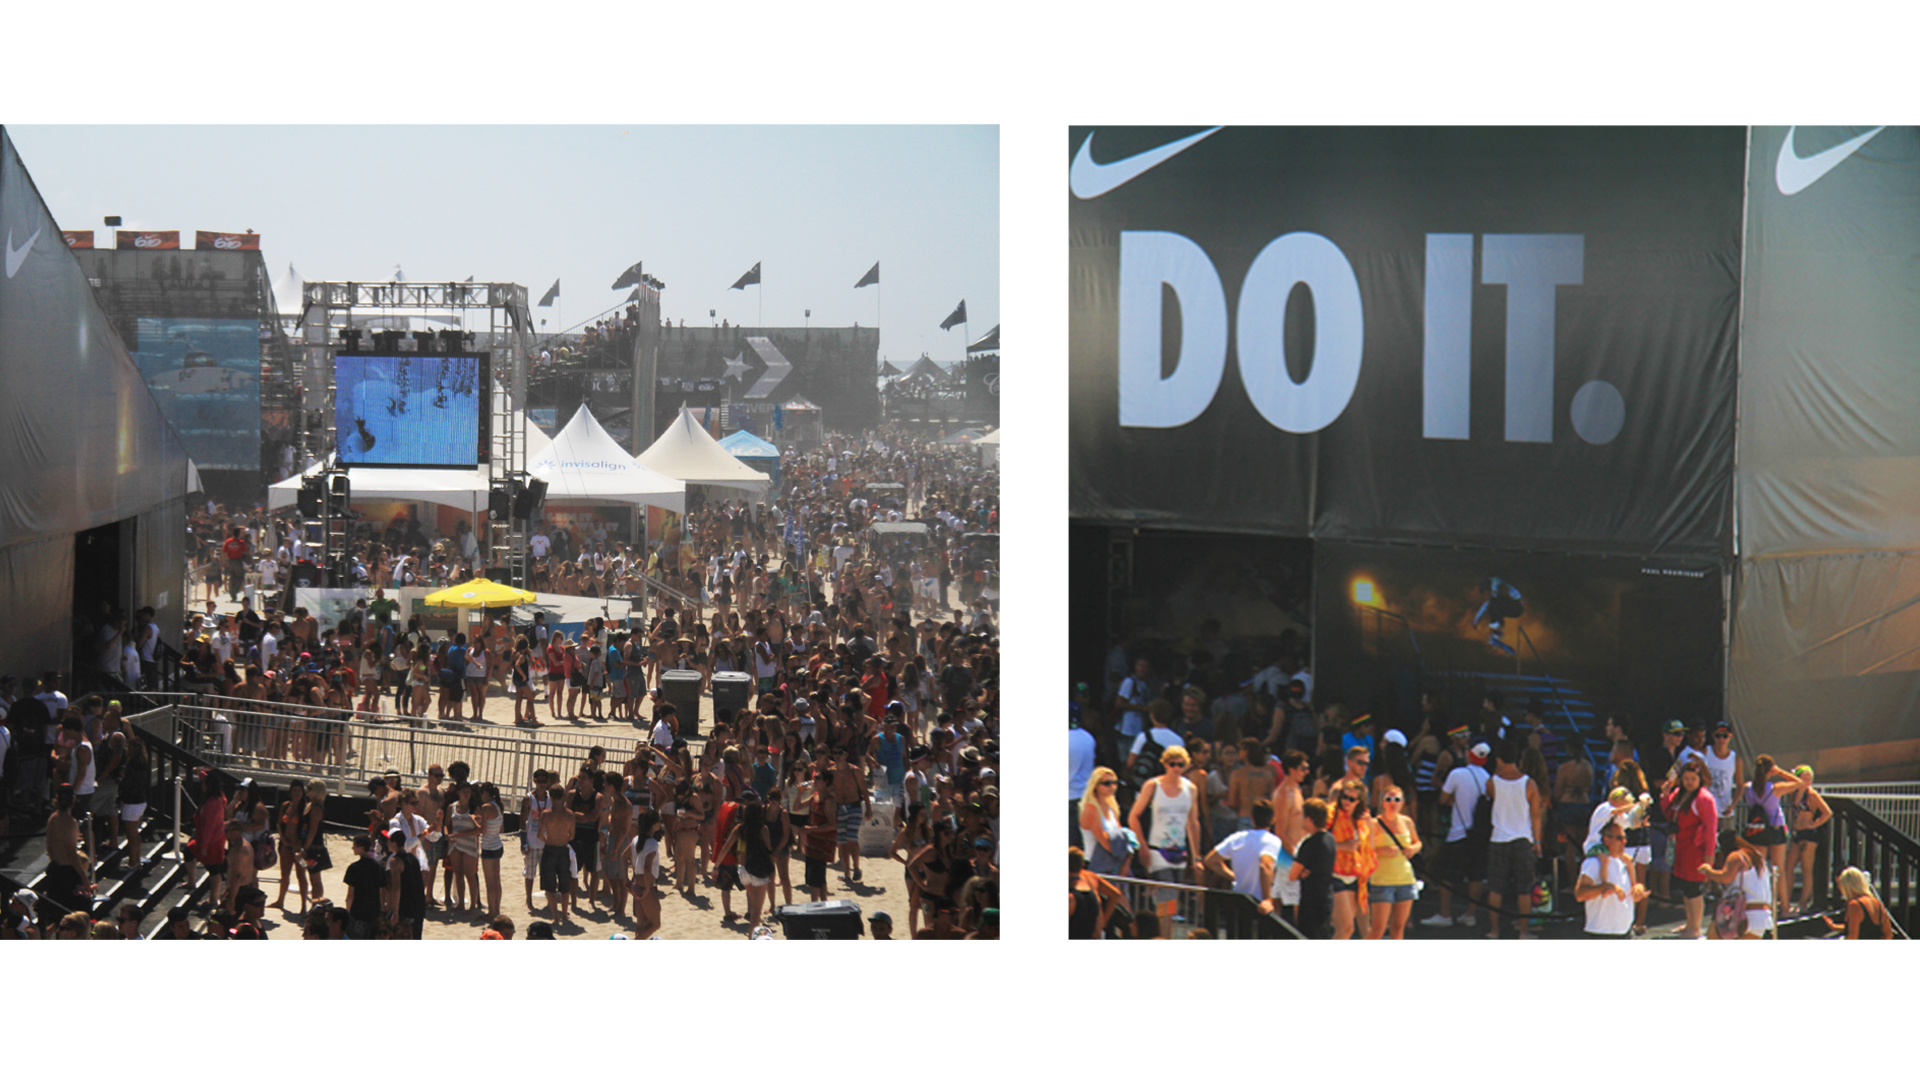 NIKE U.S. Open Surfing Beach Event. Product and display activation.